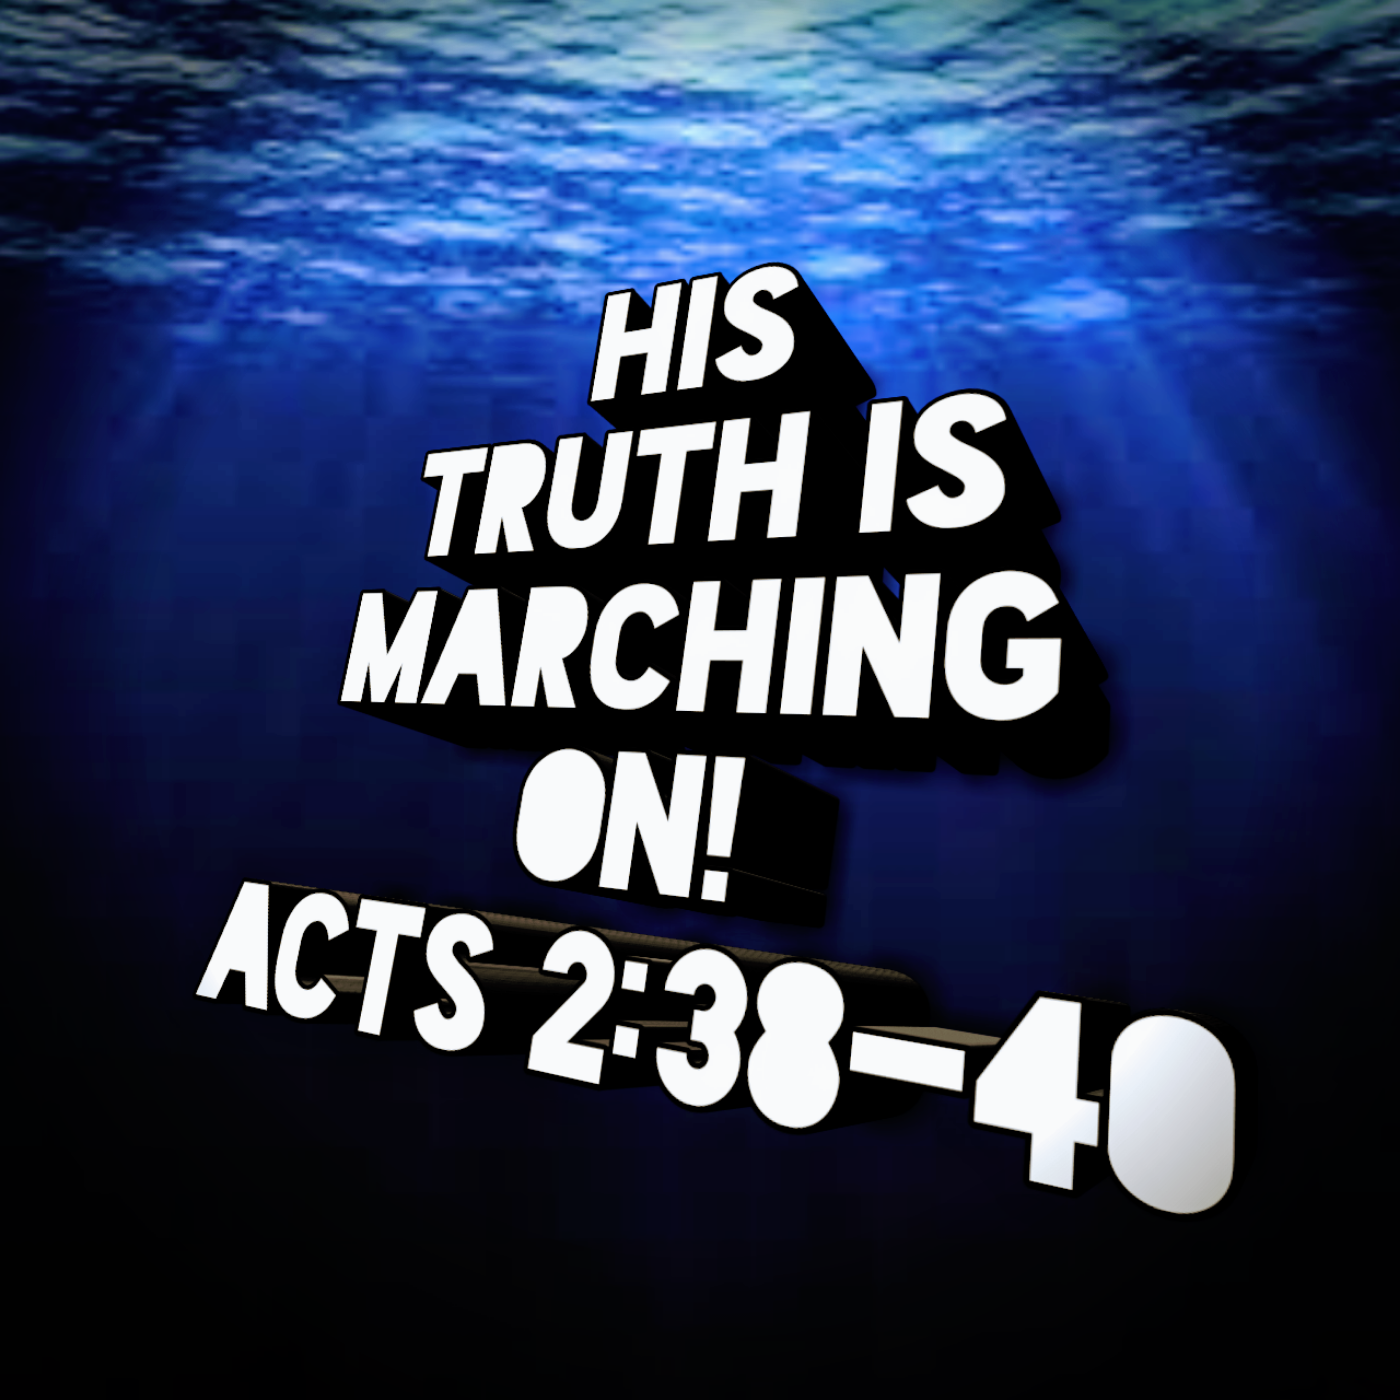 His Truth Is Marching On!